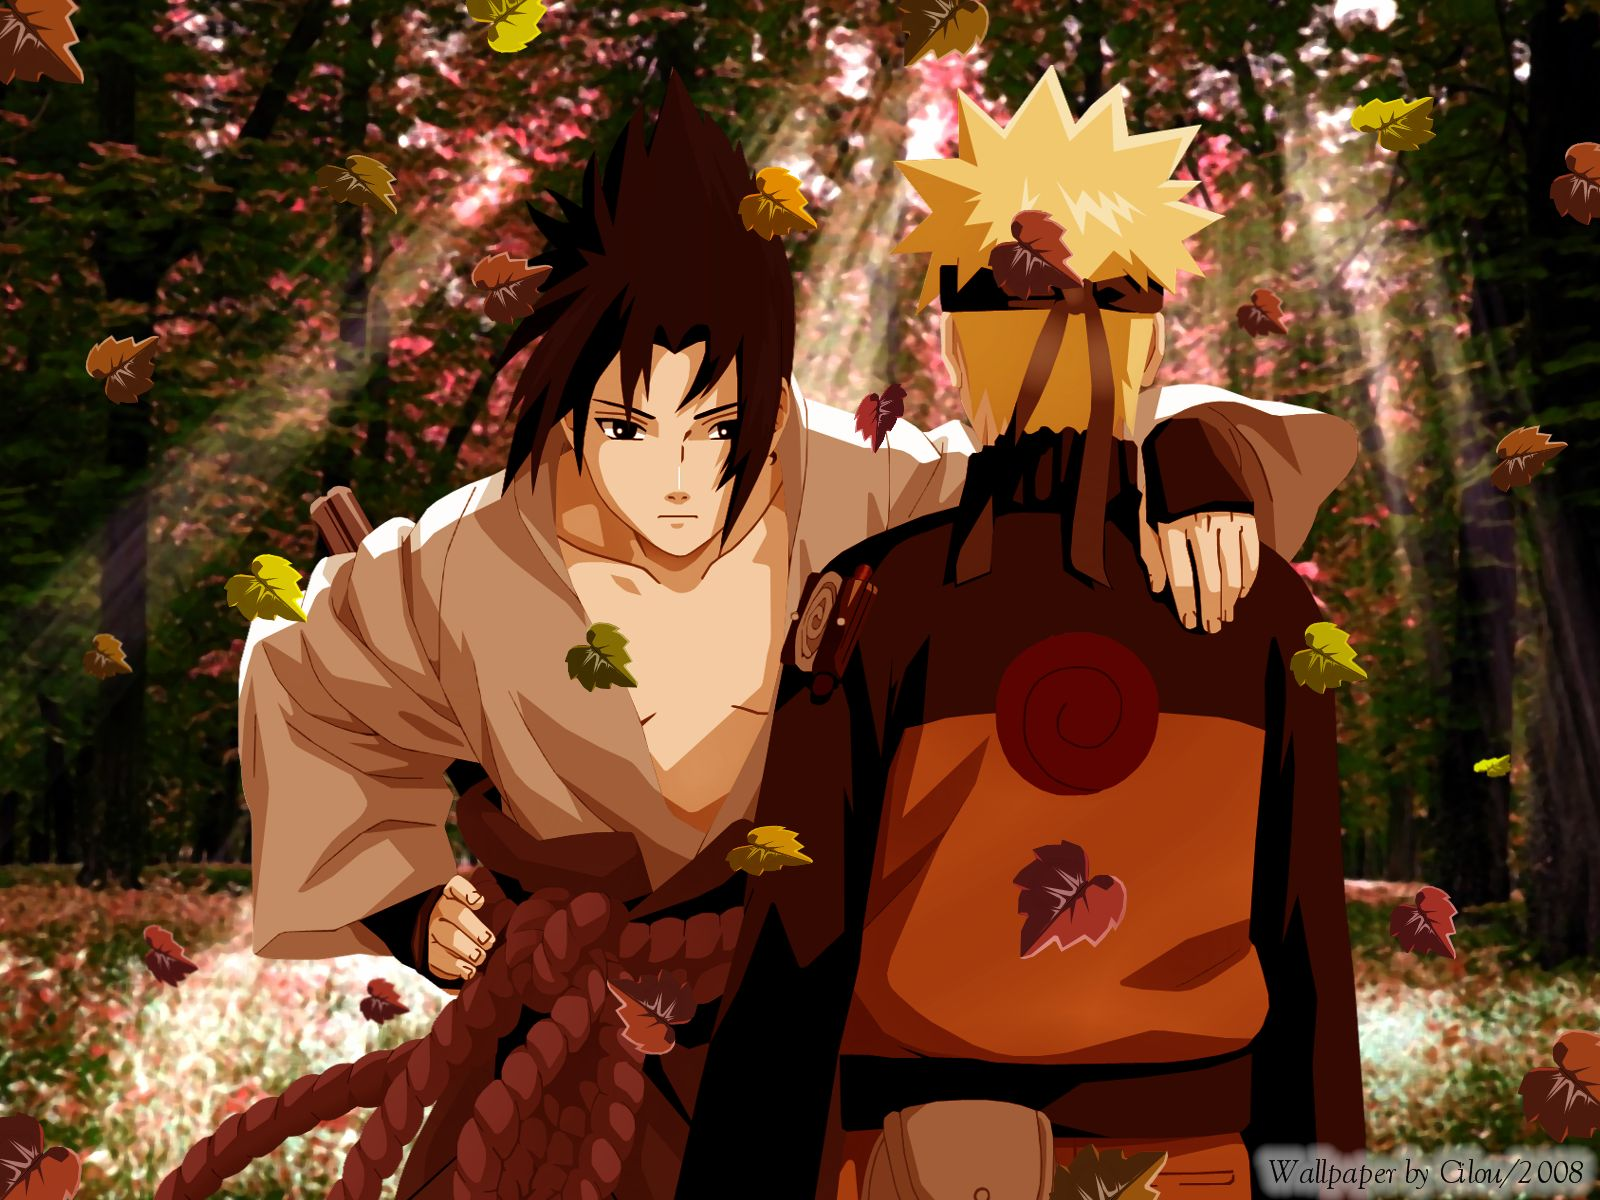 Free Download Wallpapers Naruto Shippuden 1600x1200 For Your Desktop Mobile Tablet Explore 78 Naruto Shippuden Wallpapers For Desktop Naruto Laptop Wallpaper Naruto Wallpapers Download